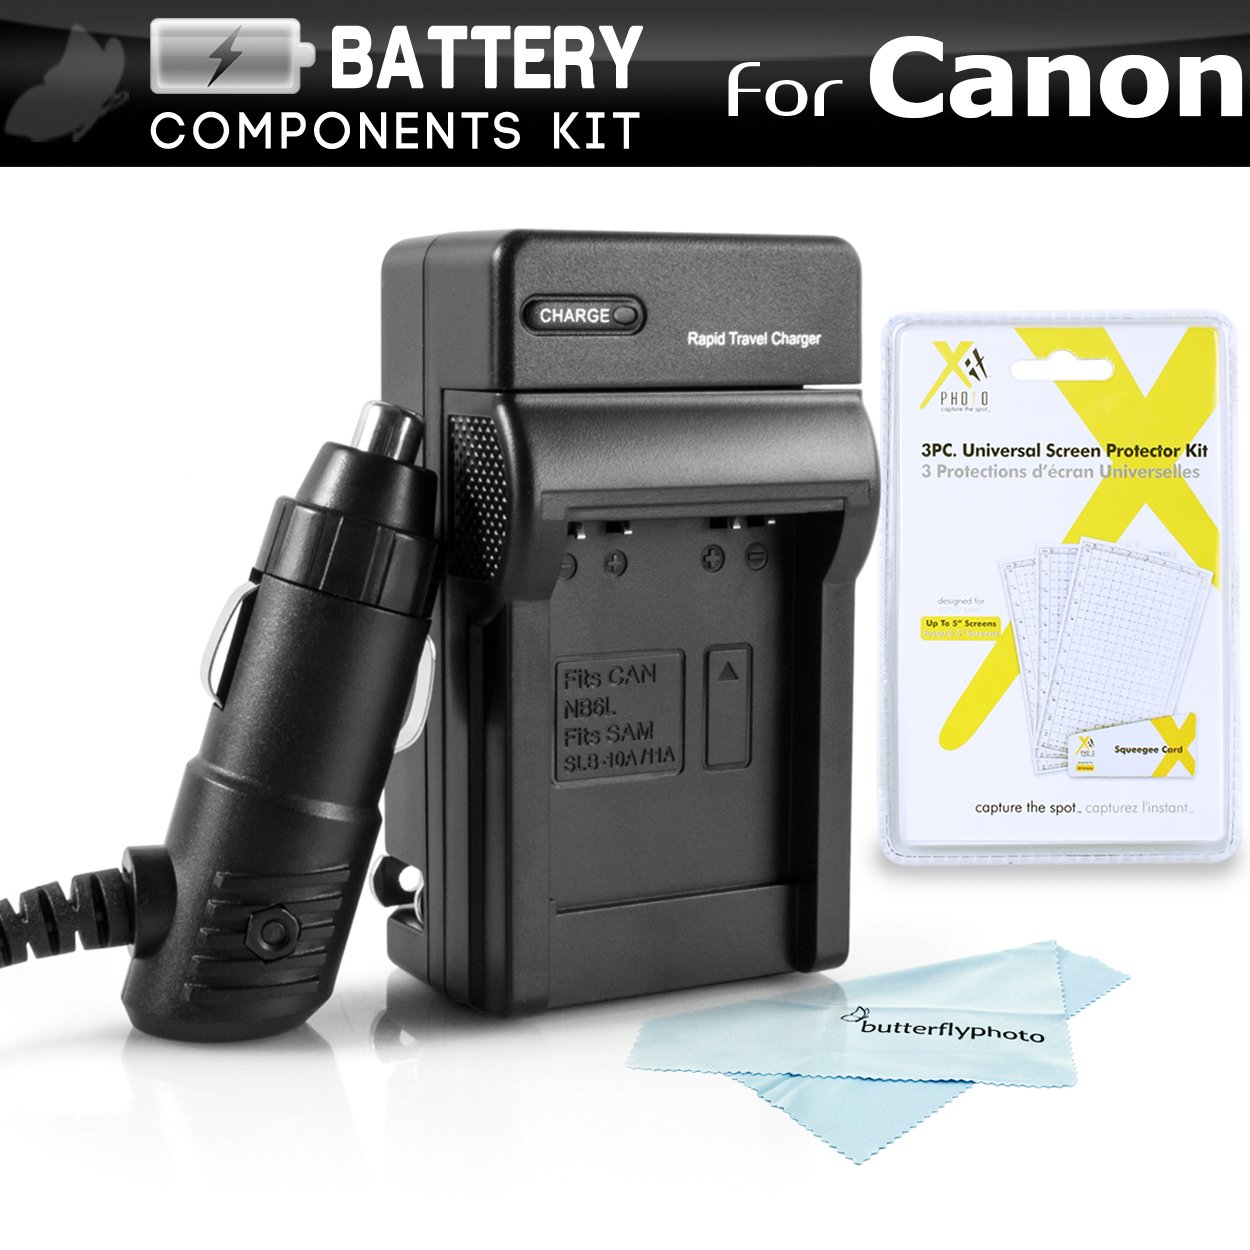 Battery Charger Kit For Canon Powershot ELPH 180, ELPH 190 IS, A2500, ELPH 150 IS, ELPH 170 IS, ELPH 160, SX400 IS, SX410 IS, SX420 IS, ELPH 340 HS, ELPH 350 HS, ELPH 360 HS Charger For Canon NB-11L ButterflyPhoto 4331994087